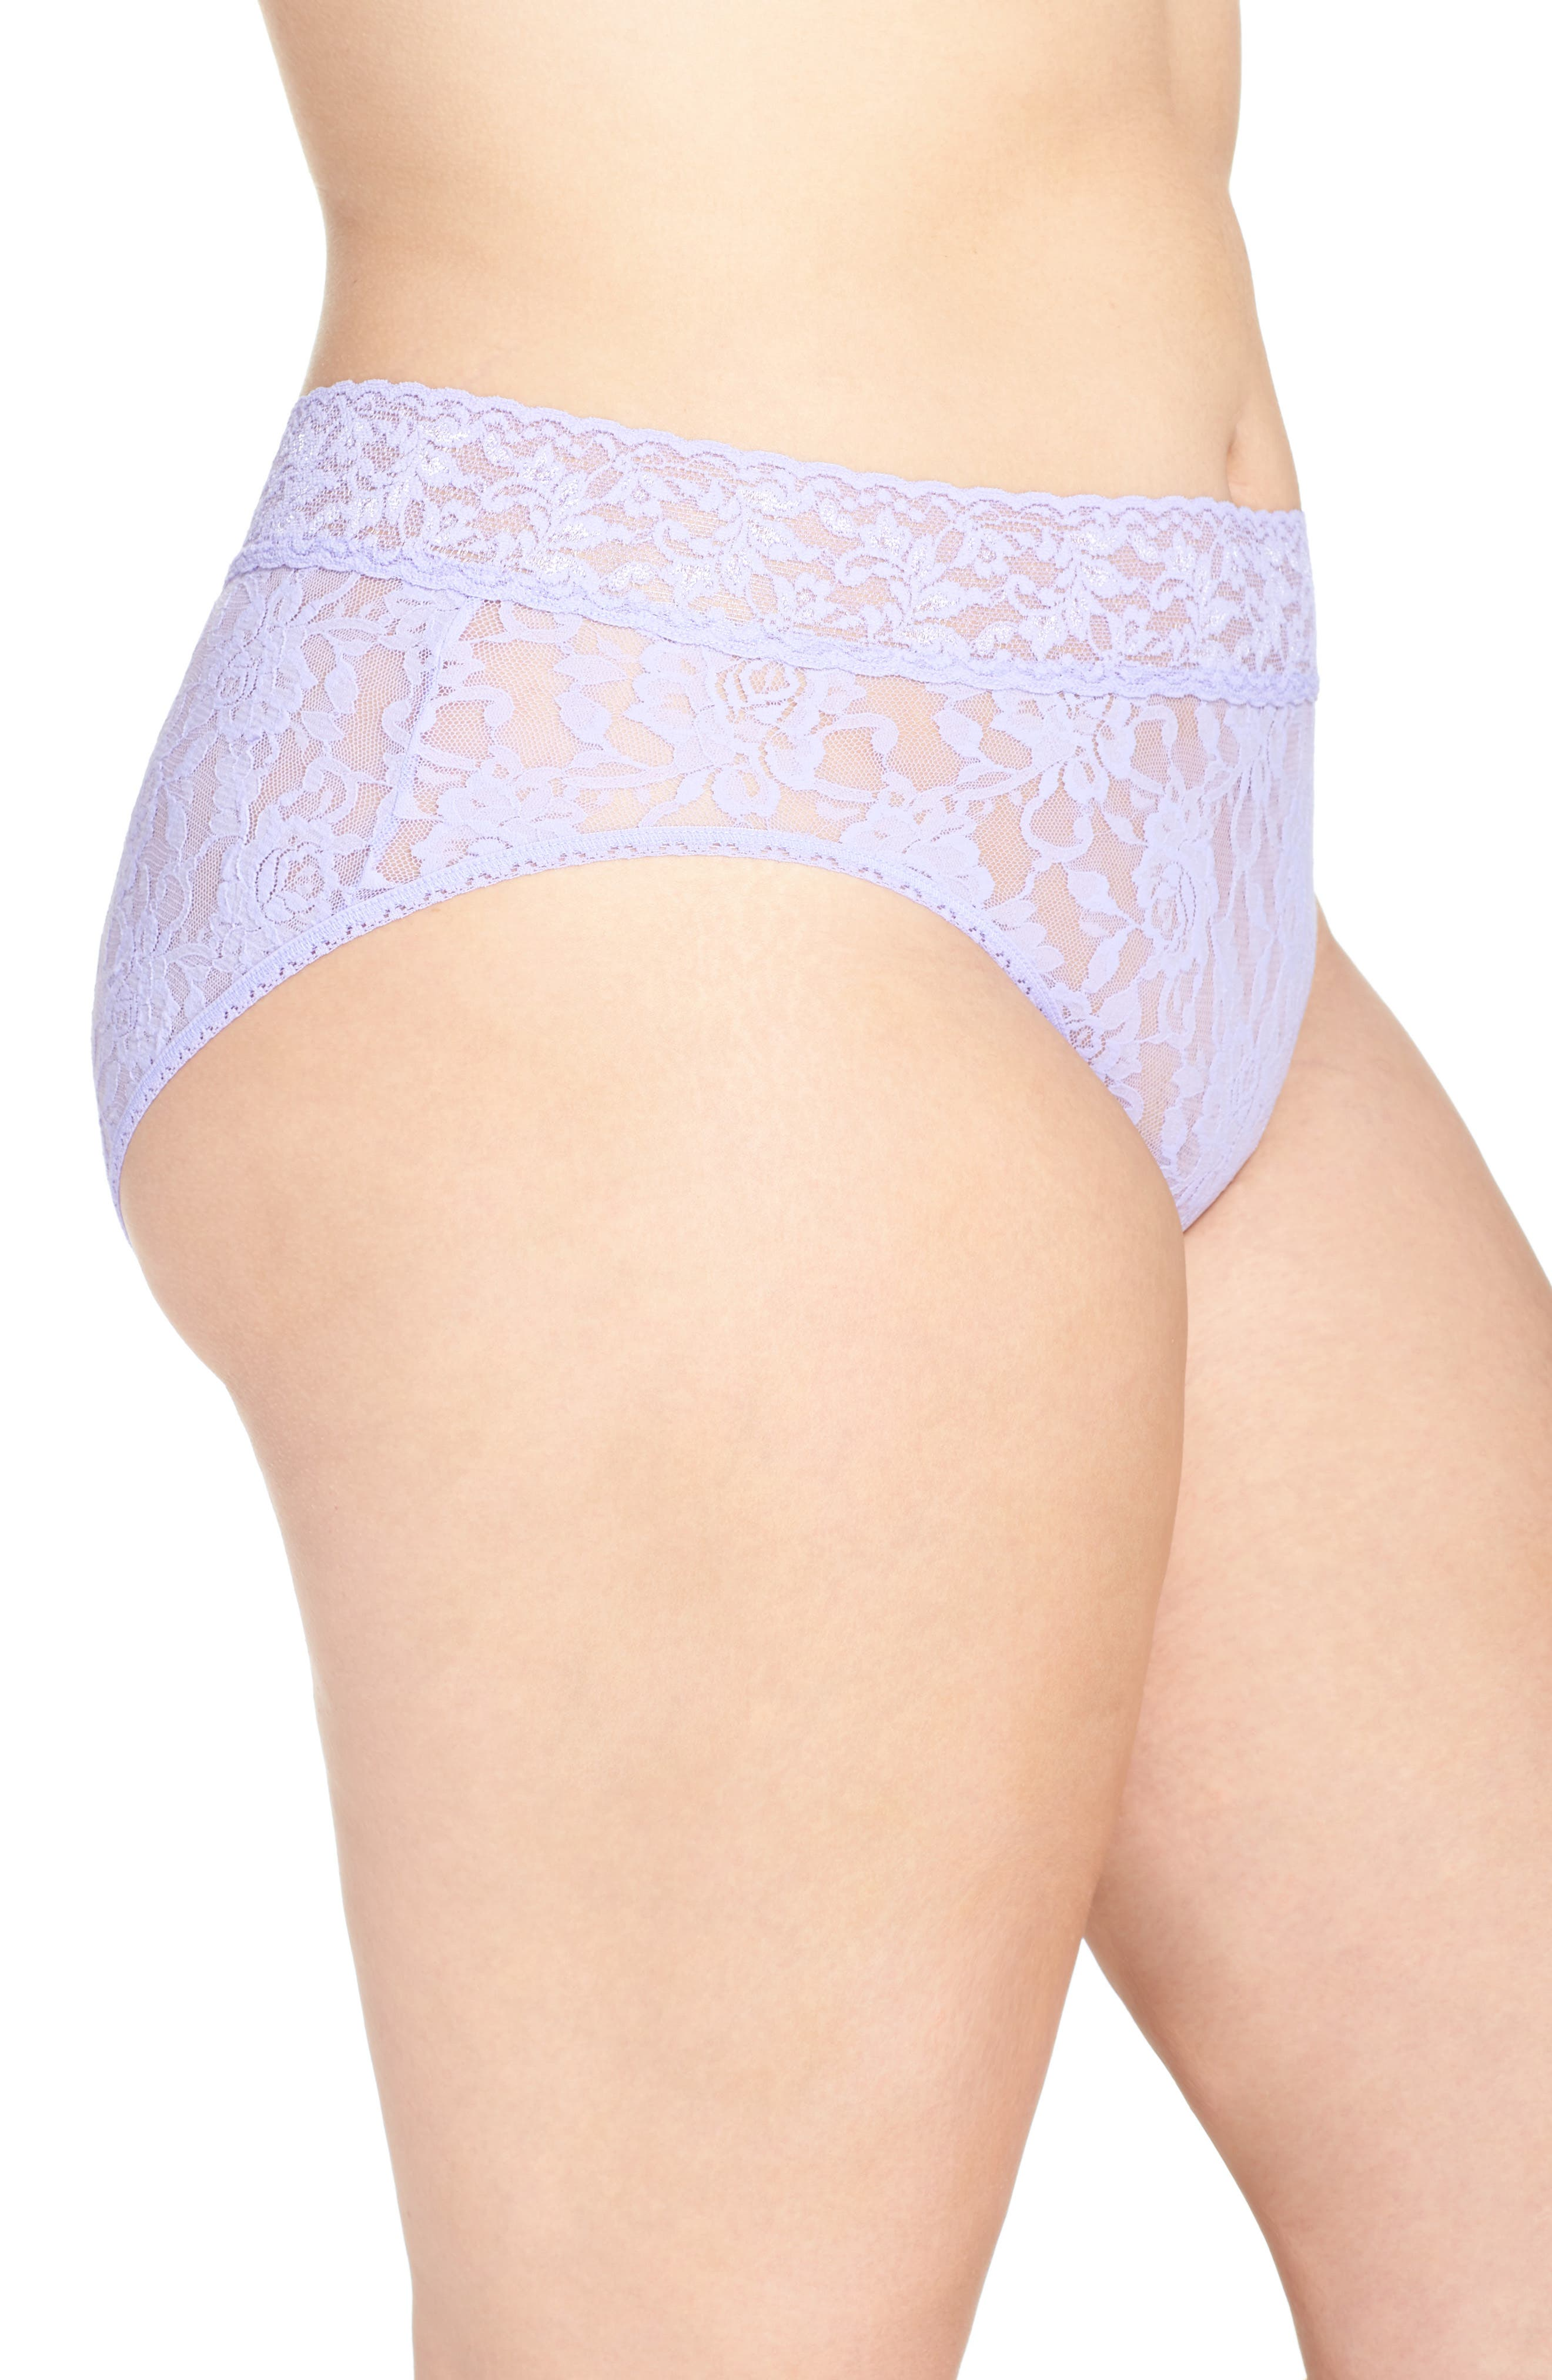 French Briefs,                             Alternate thumbnail 80, color,